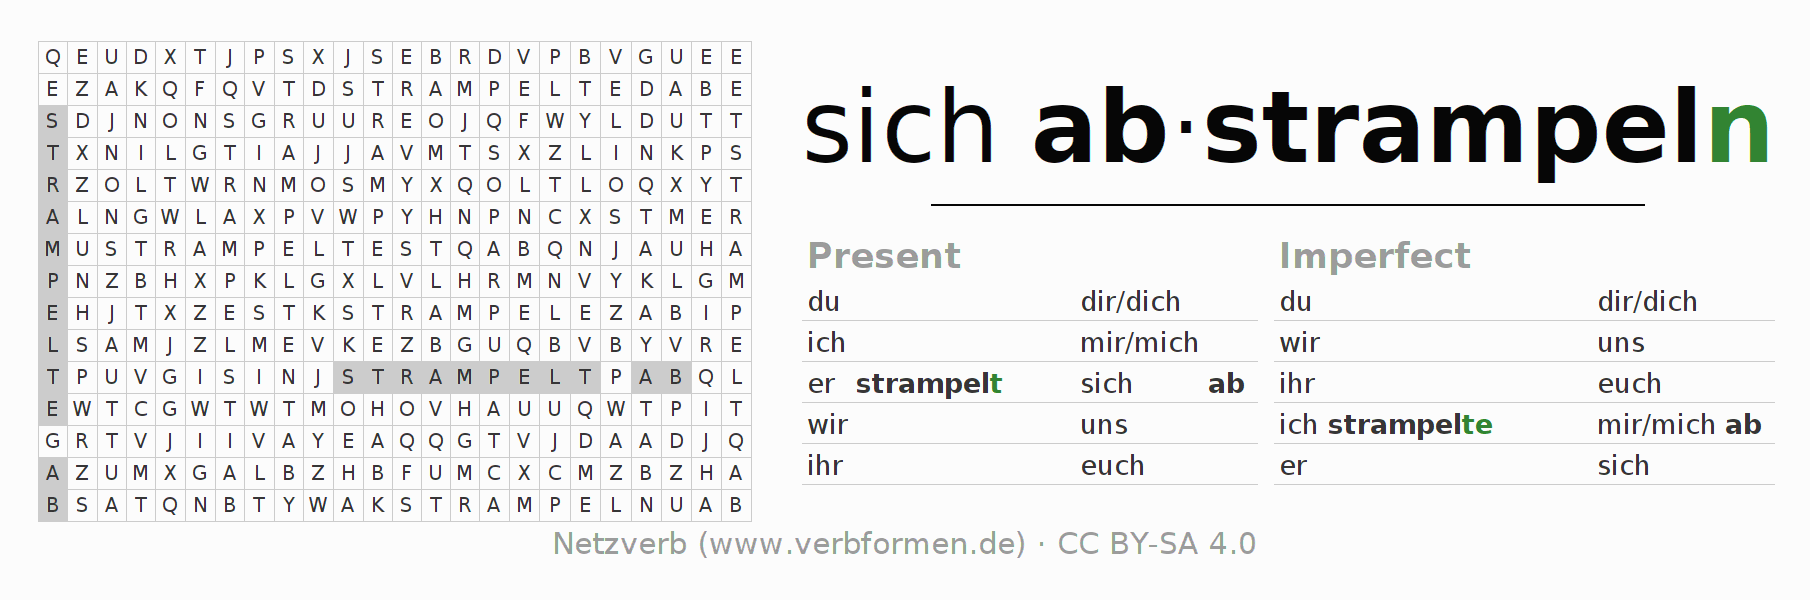 Word search puzzle for the conjugation of the verb sich abstrampeln